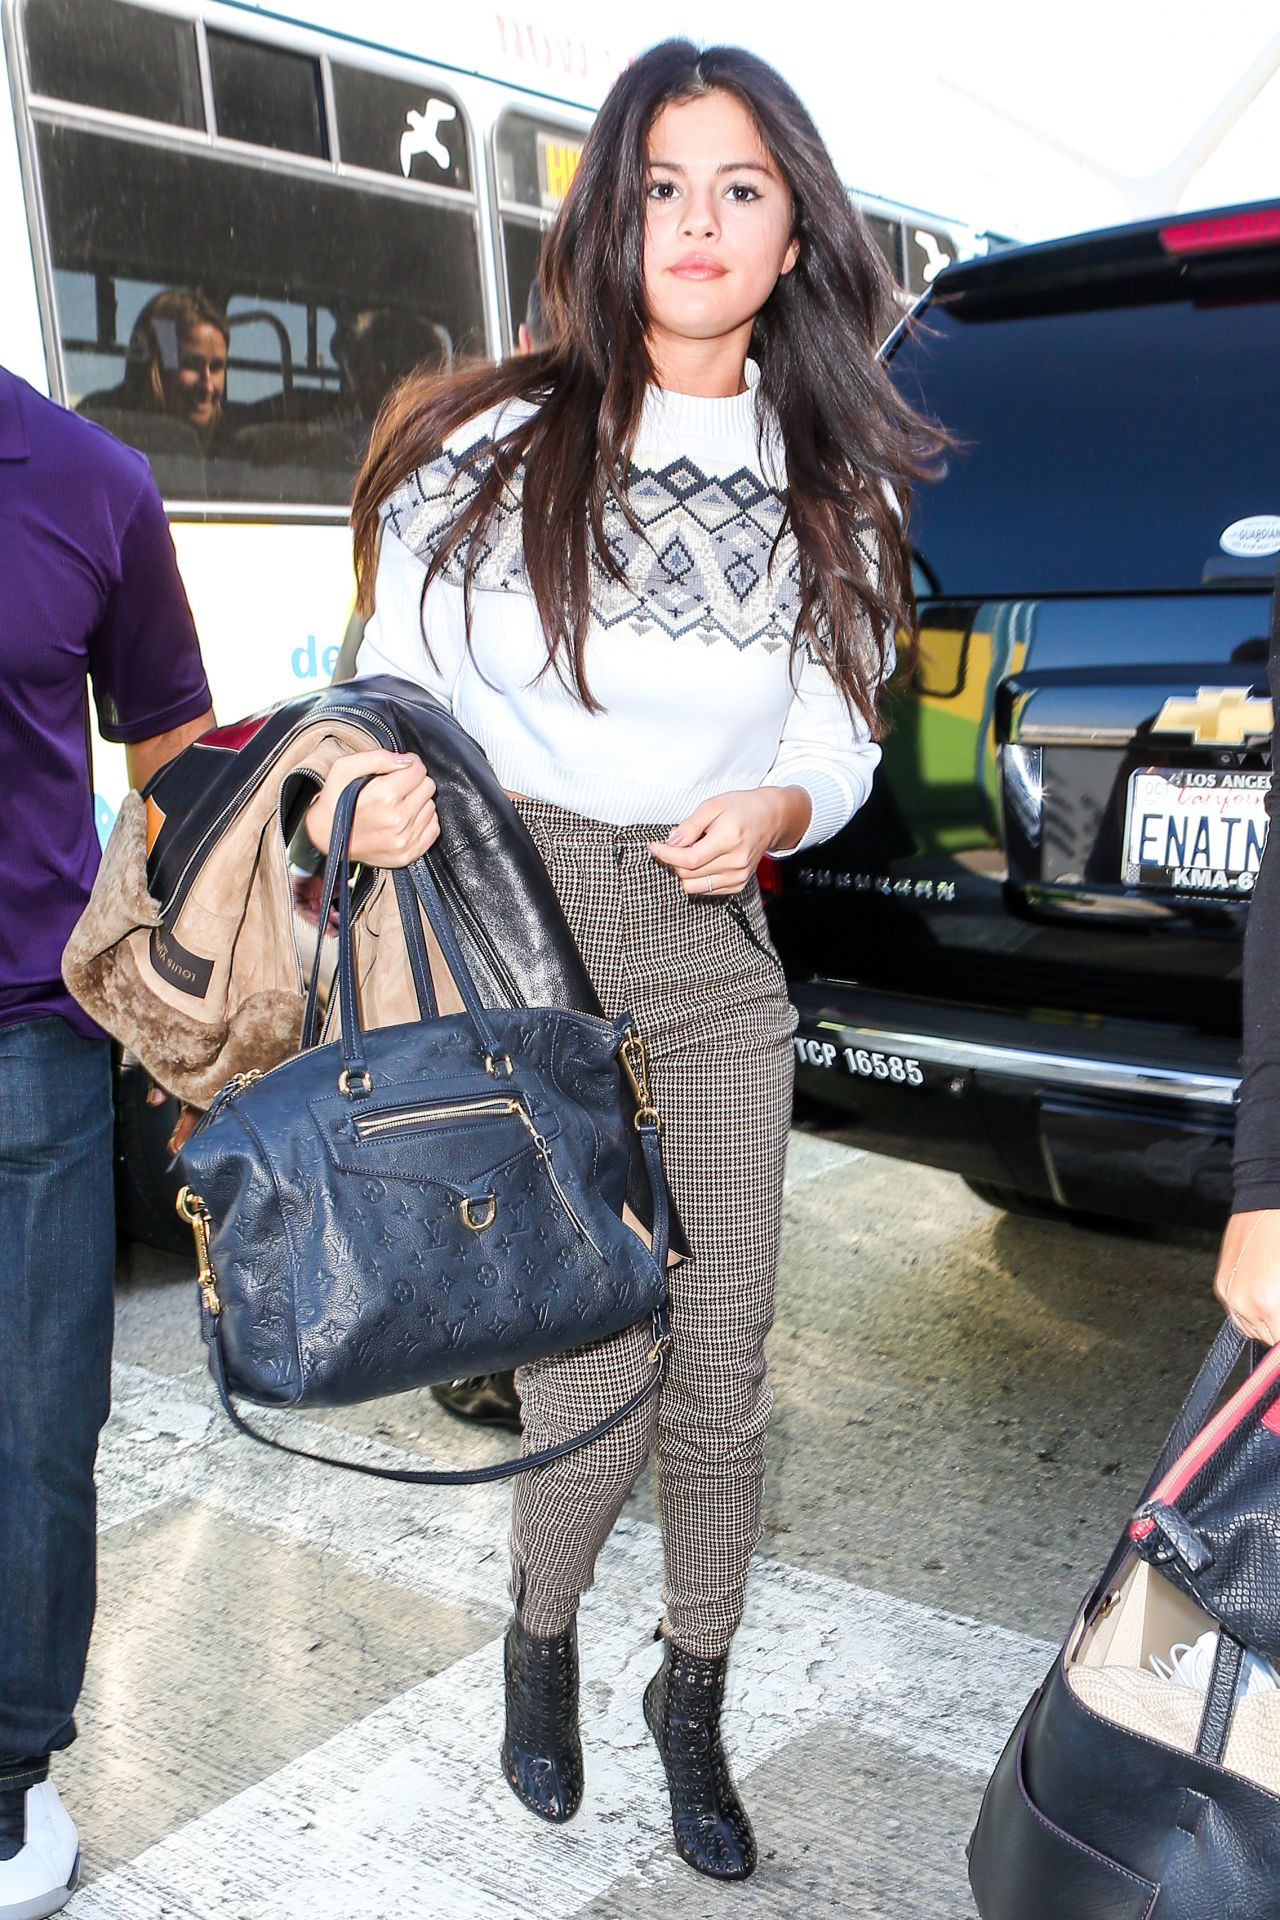 Selena Gomez 2015 Celebrity Photos Casual Style Departing On A Flight At Lax Airport In Los